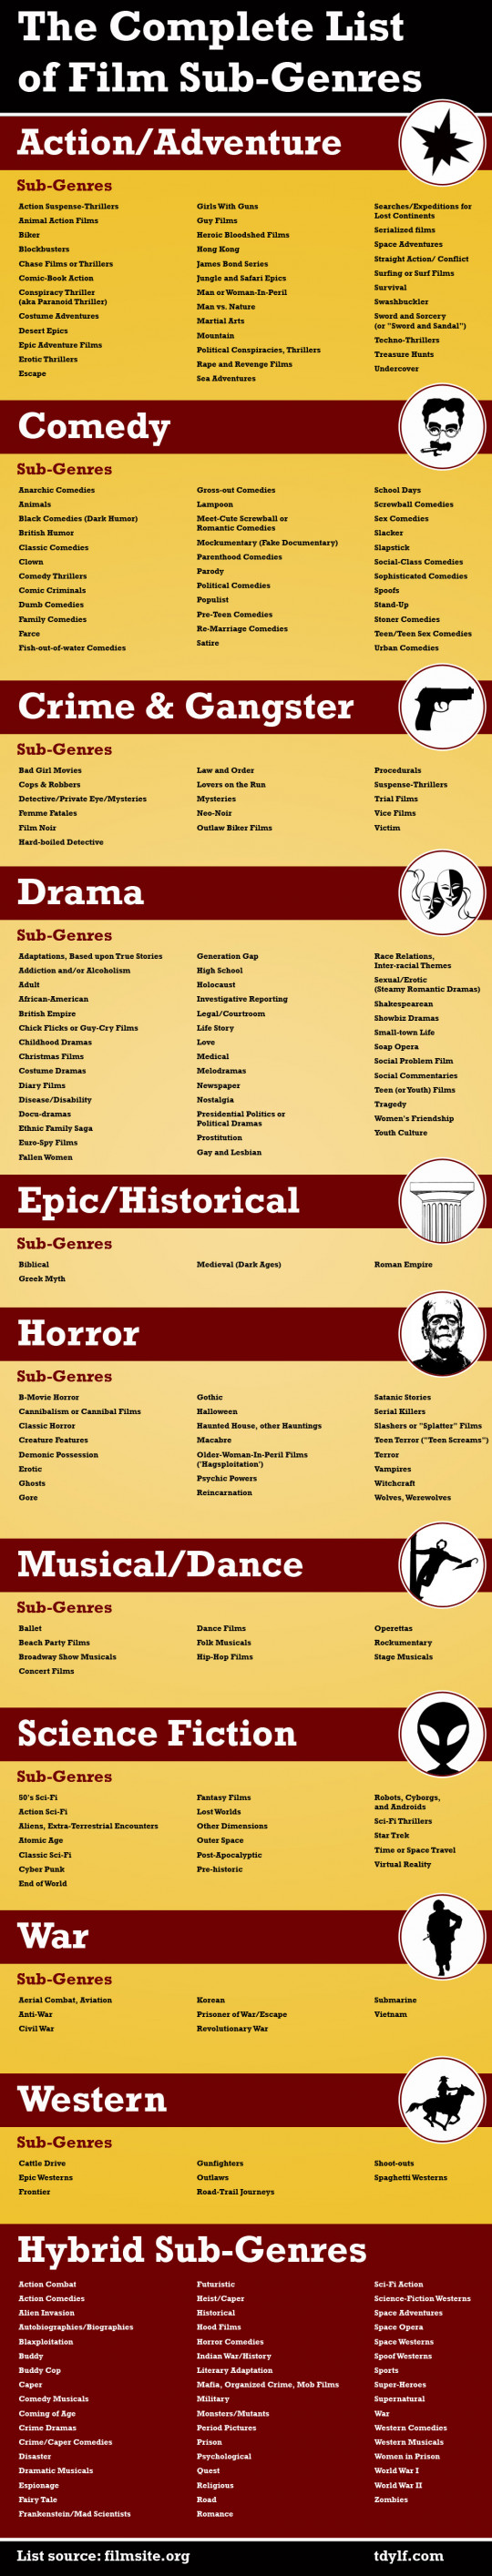 The Complete List of Film Sub-Genres